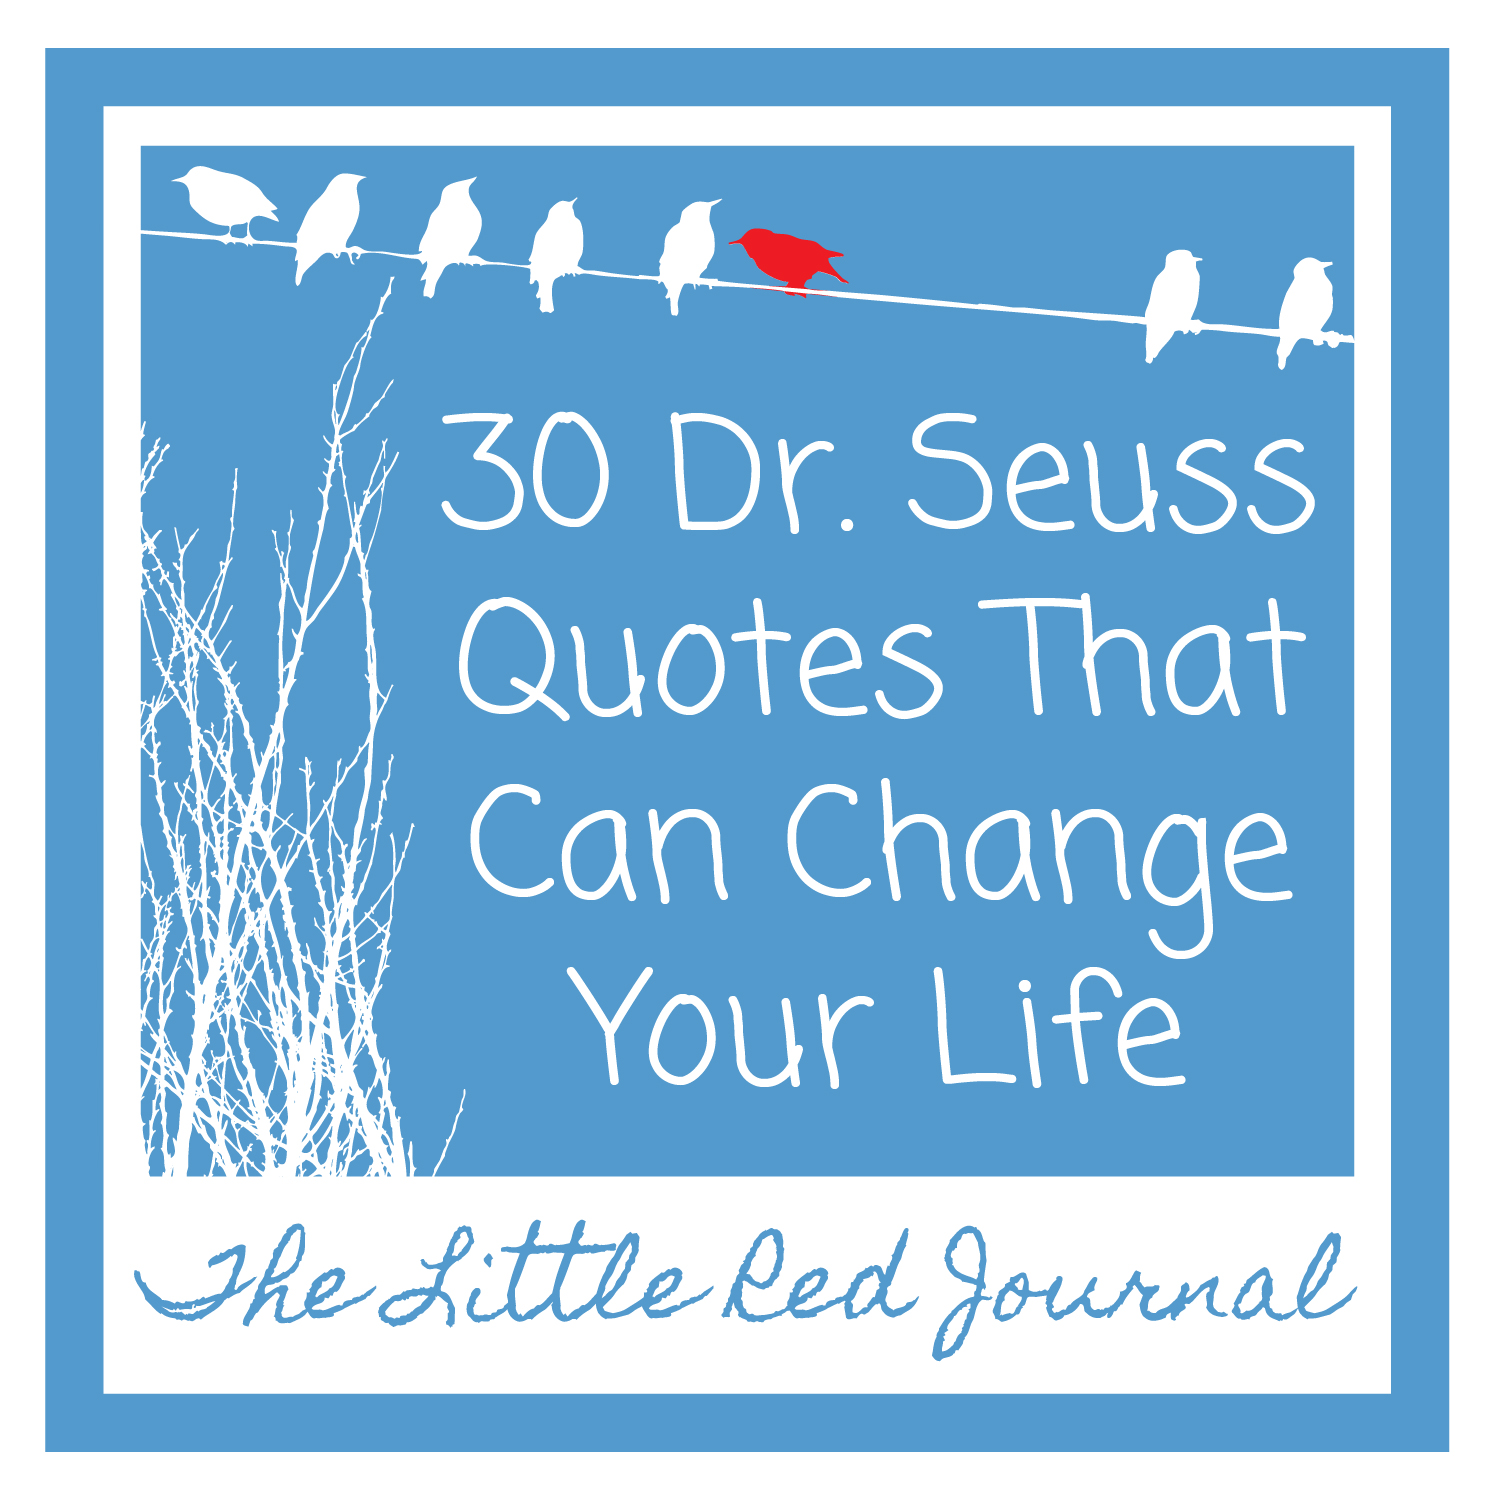 Dr Seuss Quotes About Life. QuotesGram